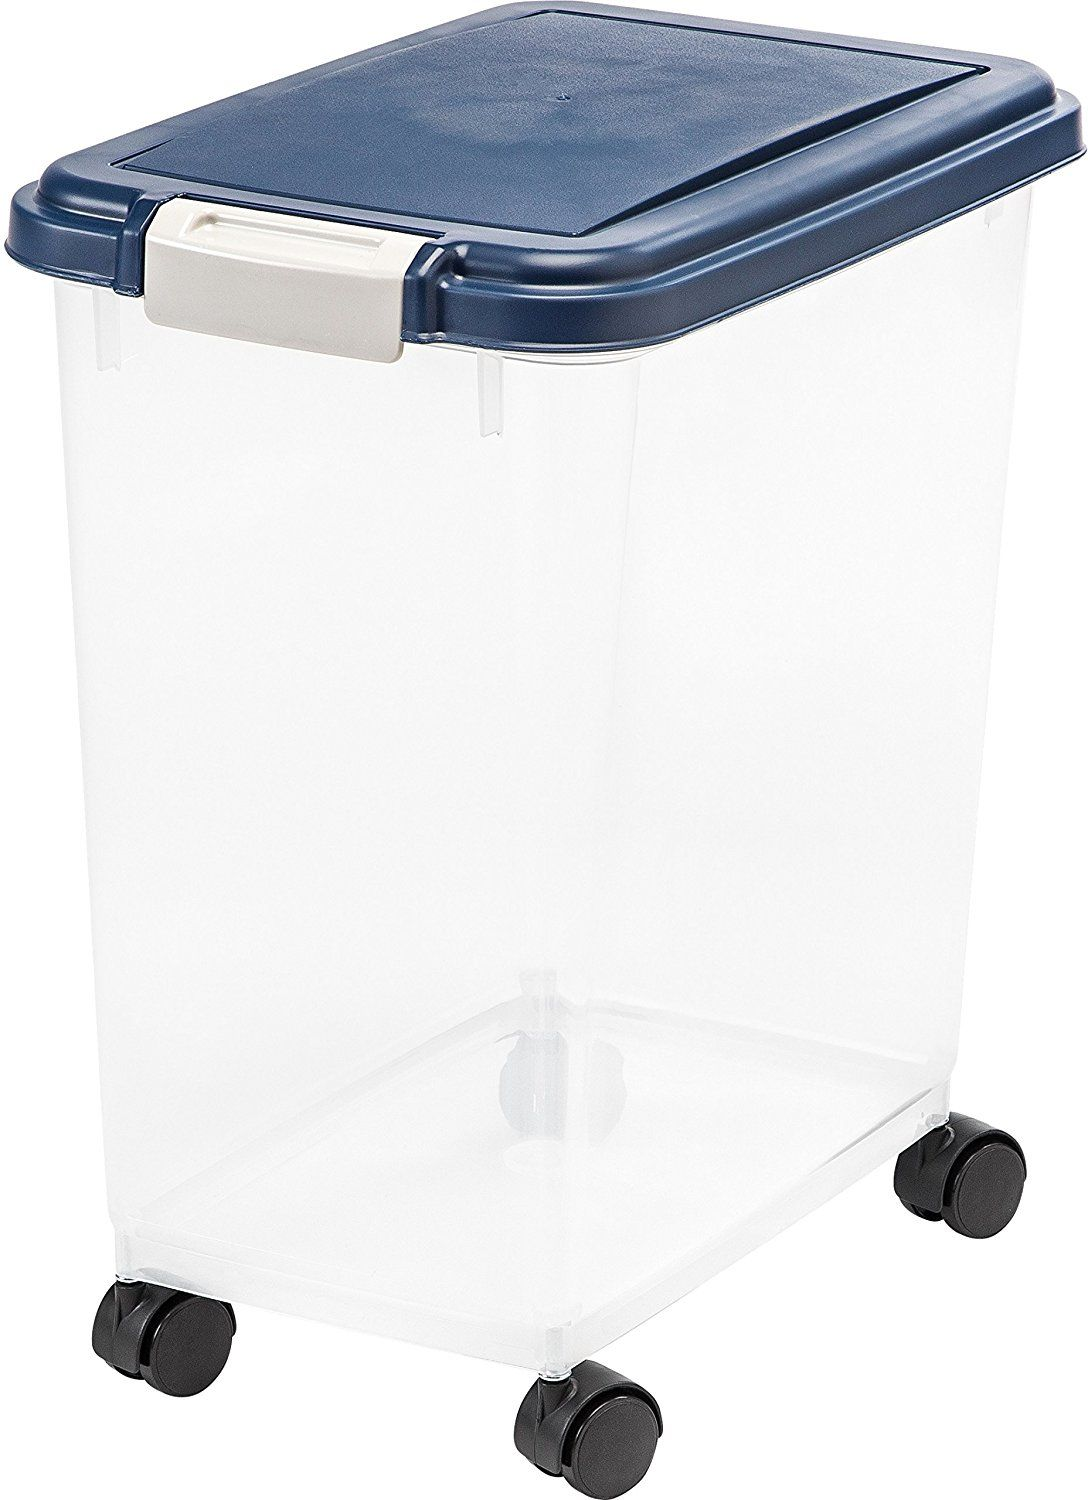 Kennelpak Van Ness Pet Food Container To Check This Awesome